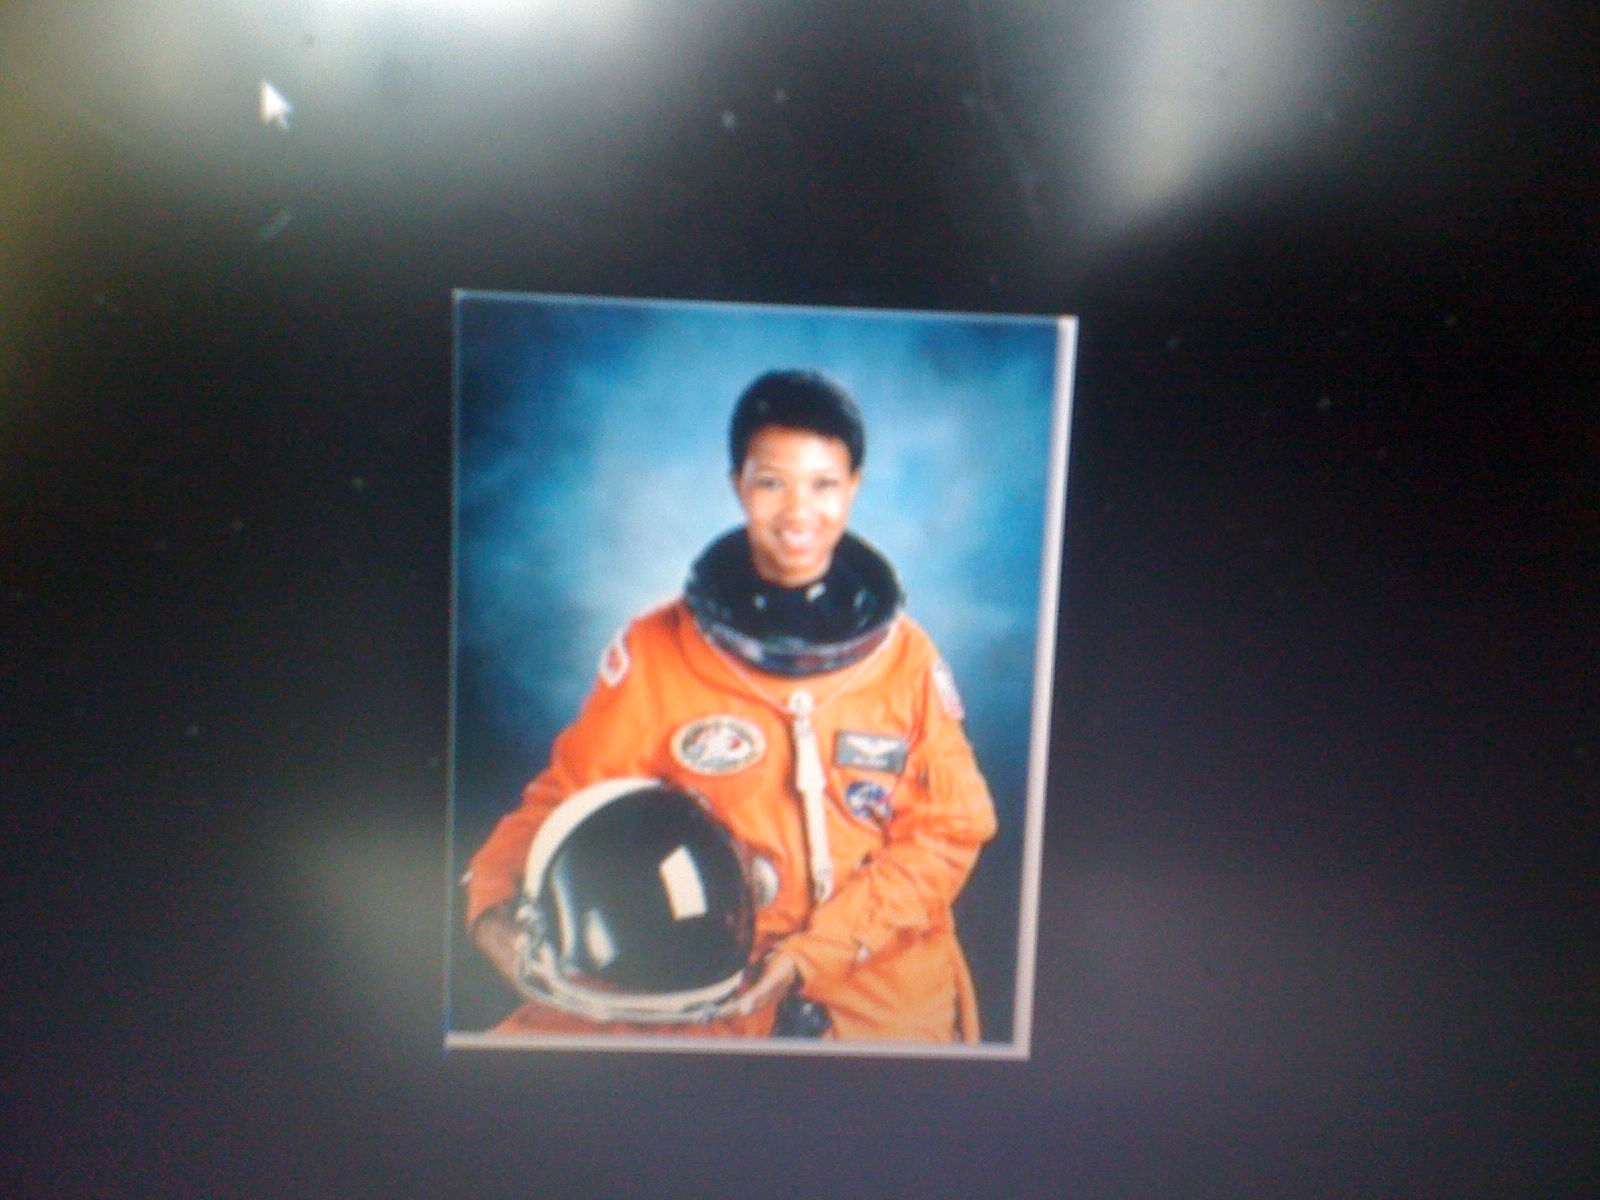 Mae Jamison Astronaut Name Badge For (page 3) - Pics about ...